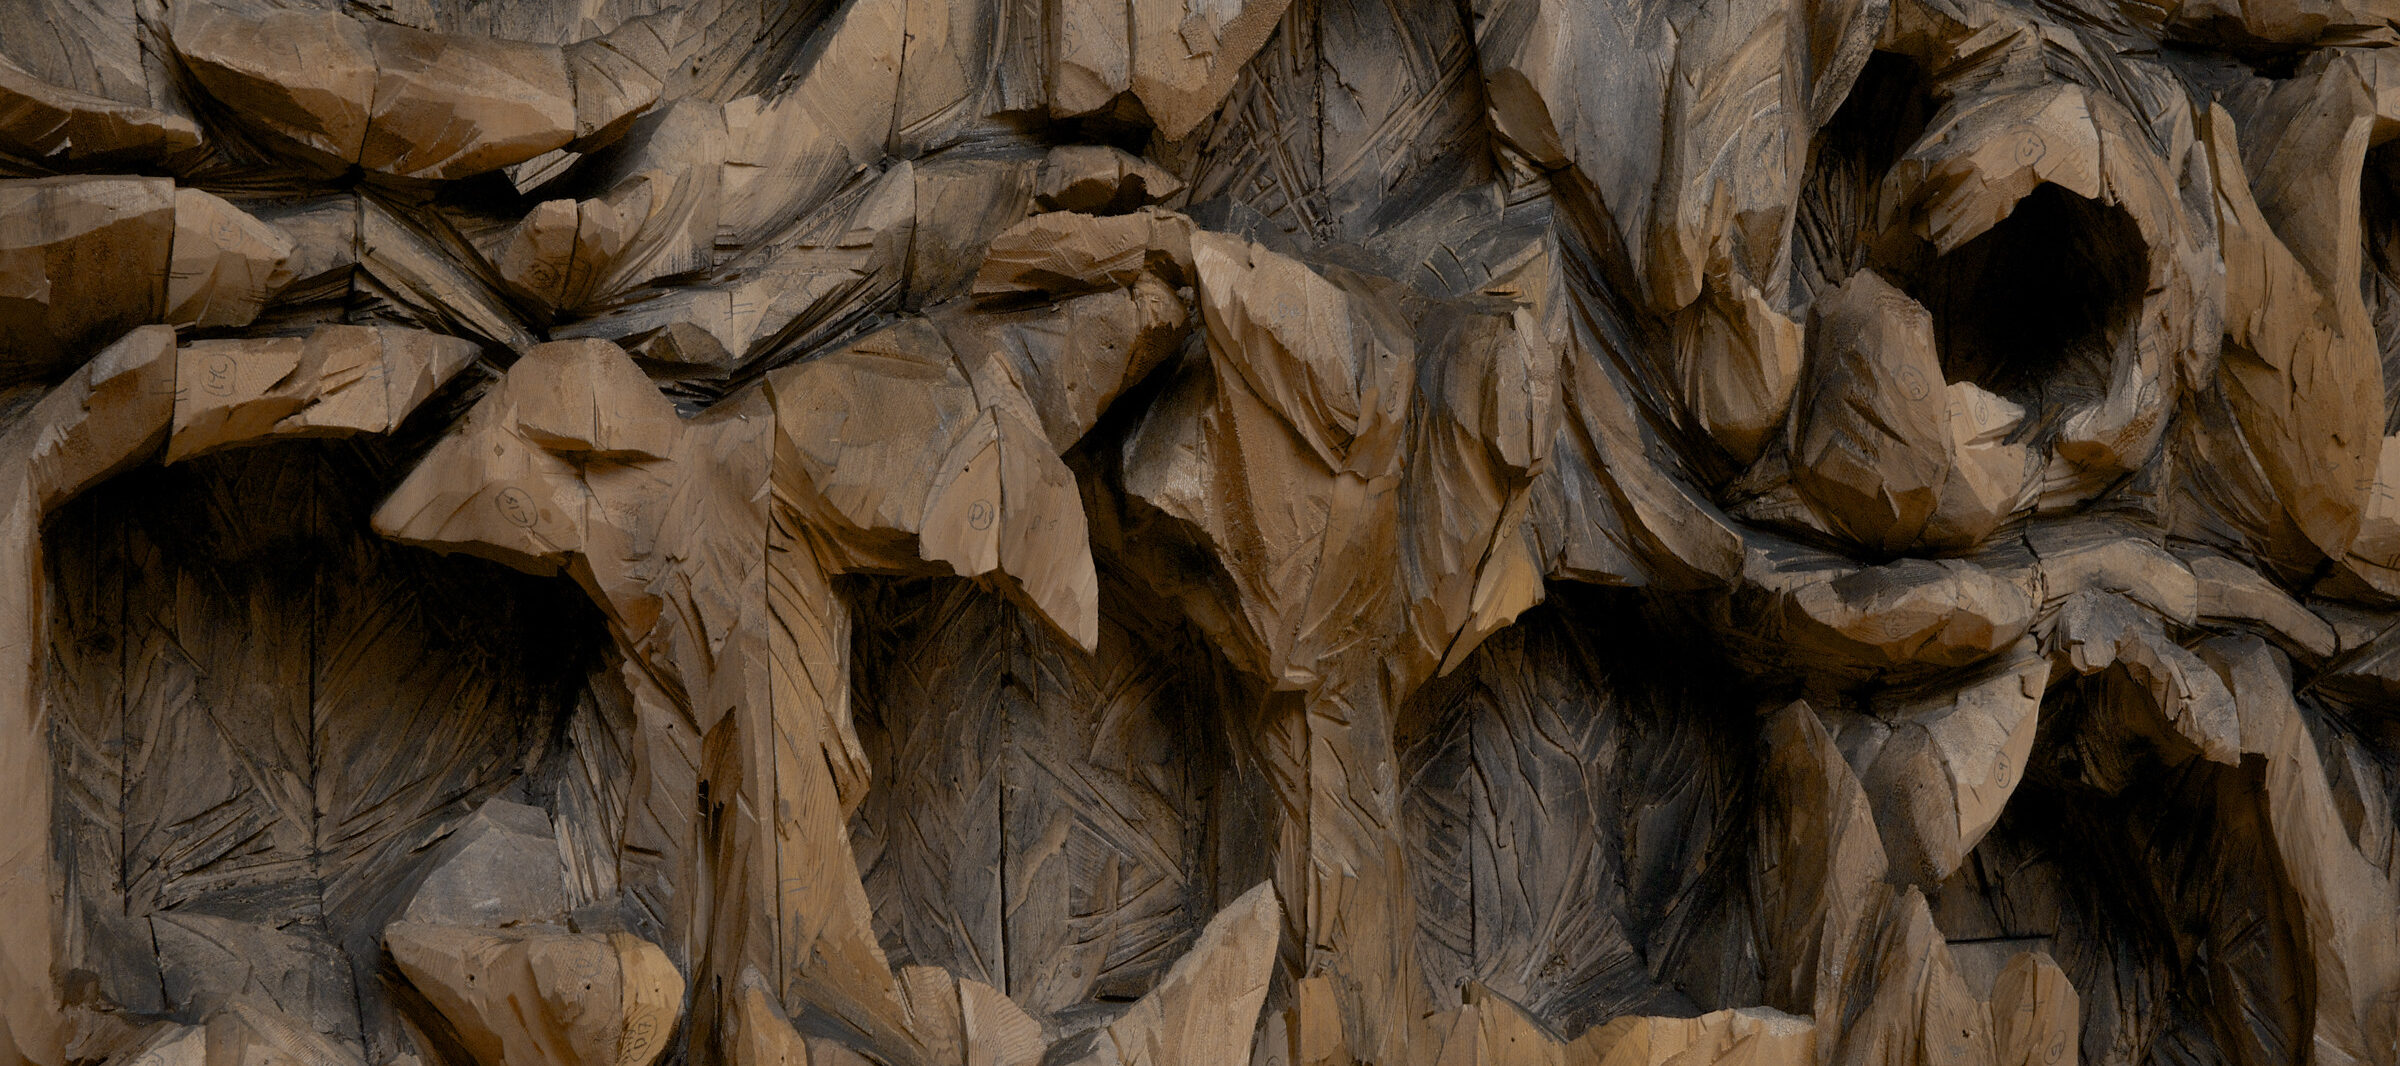 Ursula von Rydingsvard, <i>thread terror</i> (detail), 2016; Cedar and graphite, 8 ft. 10 in. x 8 ft. 5 in. x 1 ft. 1 in.; © Ursula von Rydingsvard, Courtesy of Galerie Lelong & Co.; Photo by Jerry L. Thompson